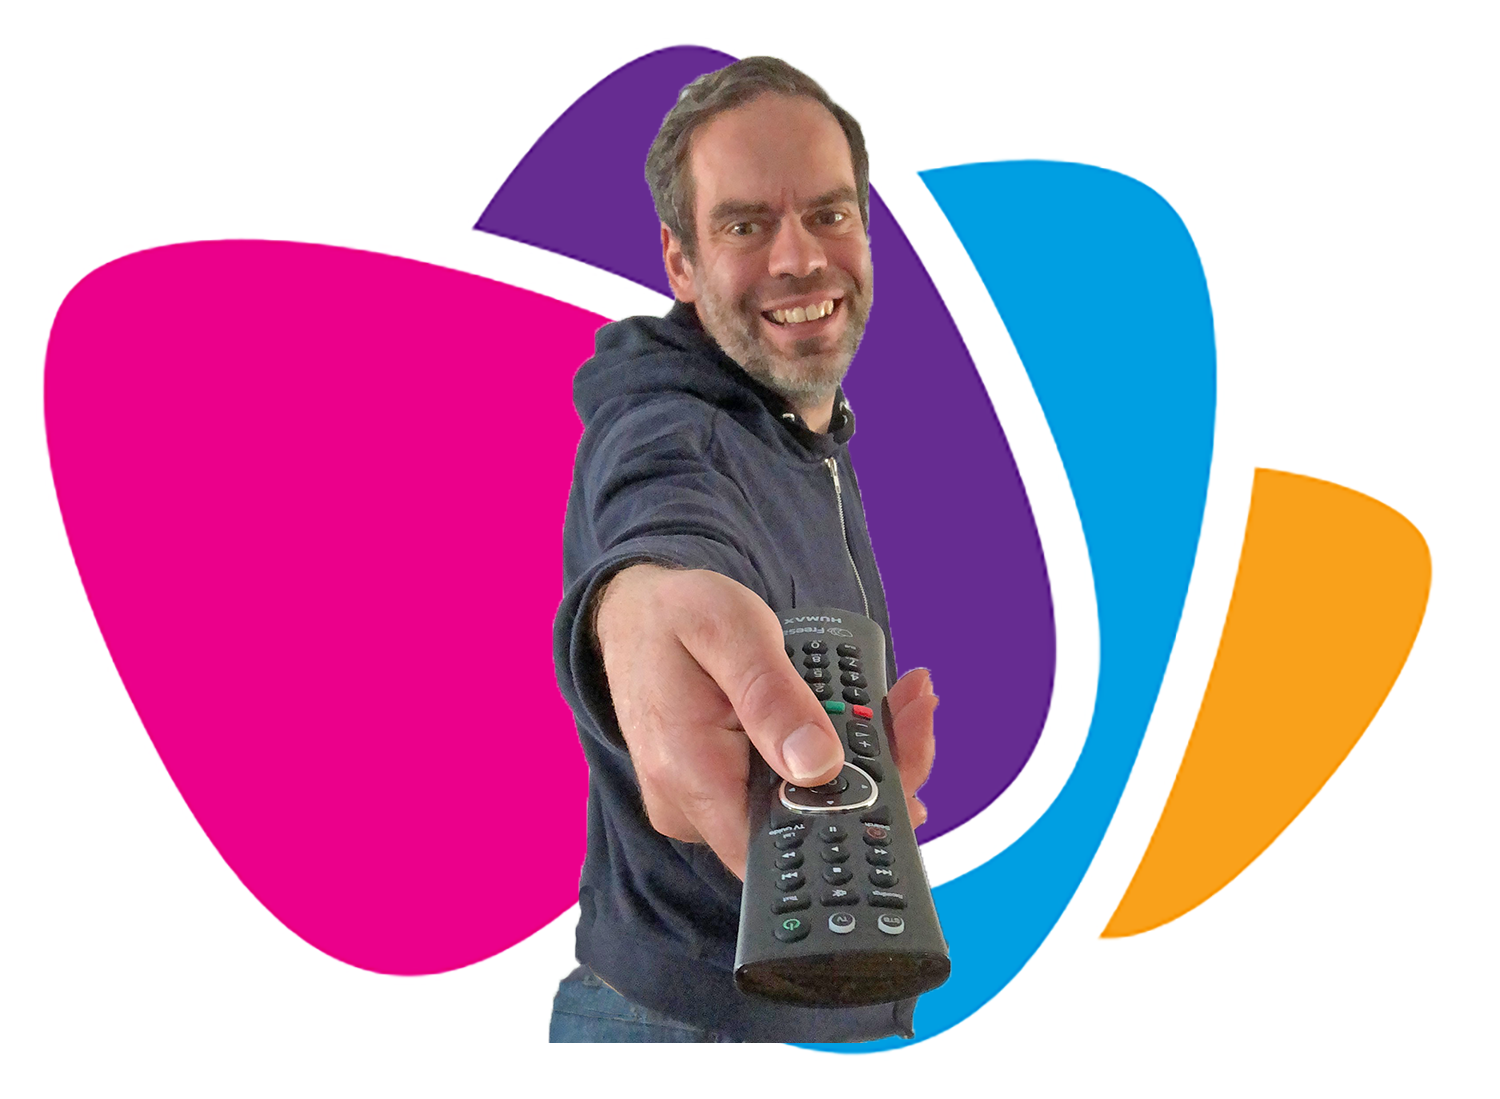 Why pay a subscription when you can have Freesat TV?